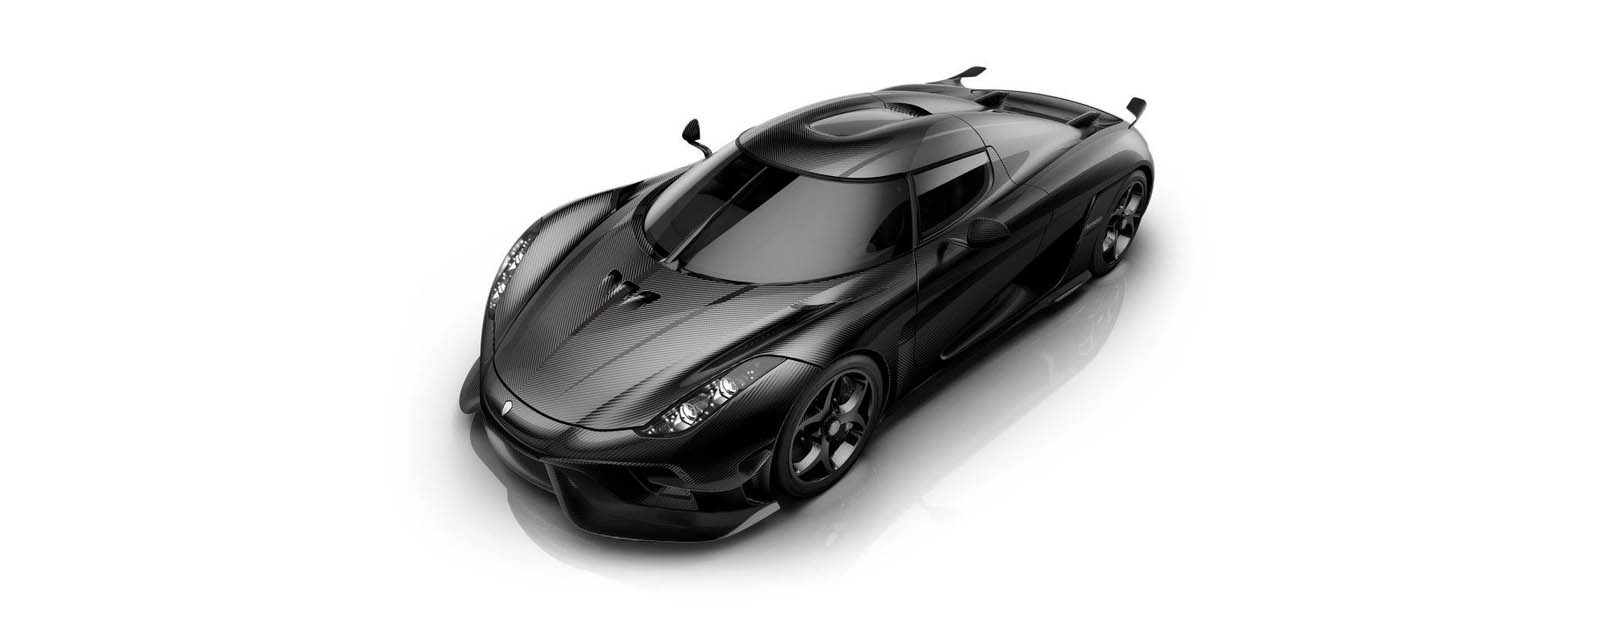 Koenigsegg Regera - Look base